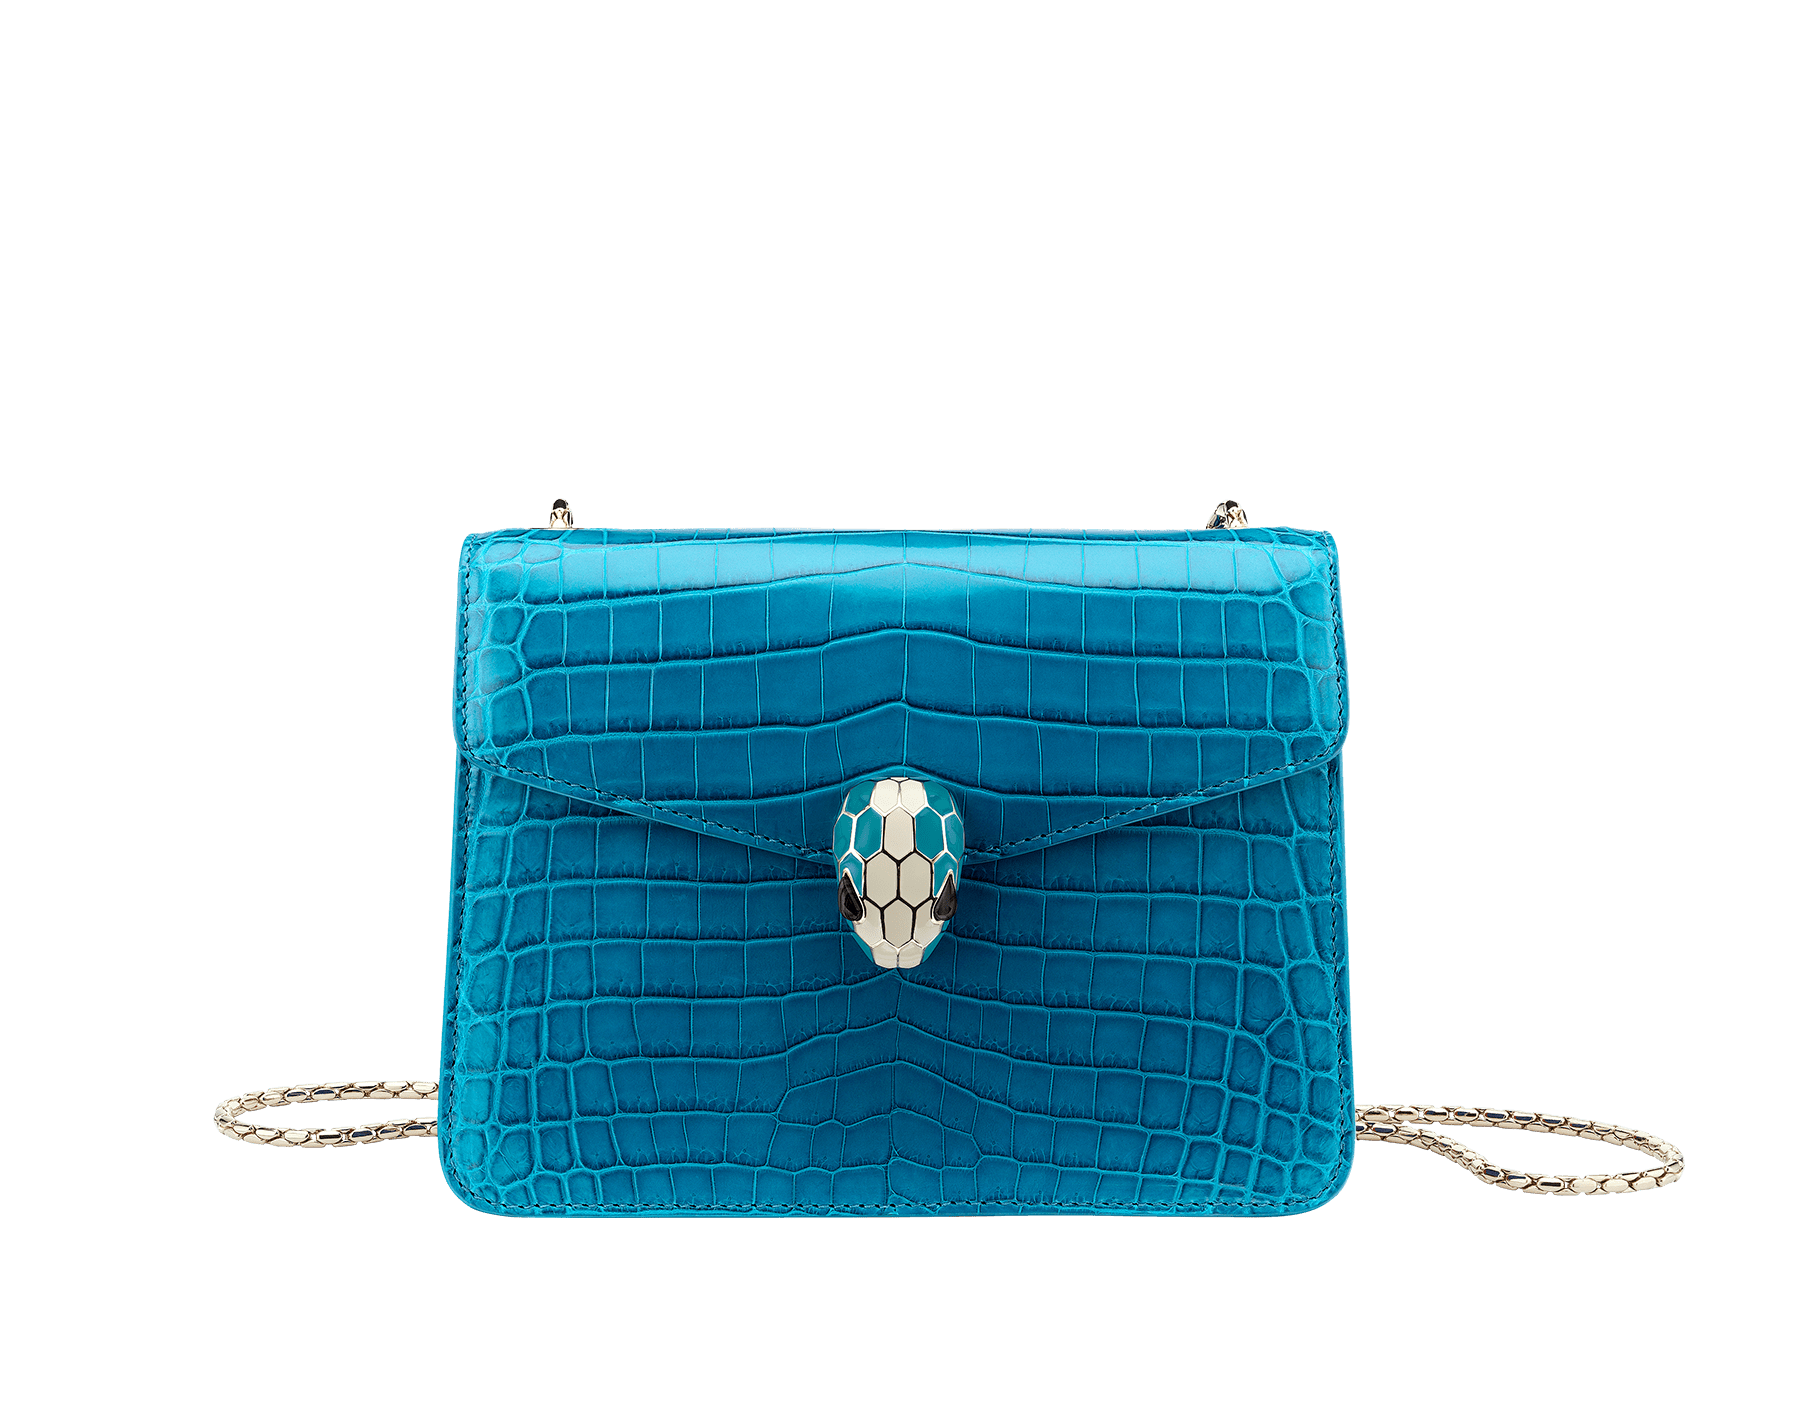 Flap cover bag Serpenti Forever in ocean turquoise shiny crocodile skin with brass light gold plated Serpenti head closure in white and ocean turquoise enamel with eyes in black onyx. Internal metal tag featuring the Bulgari logo, and pocket mirror. Small size with one gusset and precious snake body-shaped chain. 20 x 15 x 3,5 cm - 7.9 x 5.1 x 1.4'' 39775 image 1